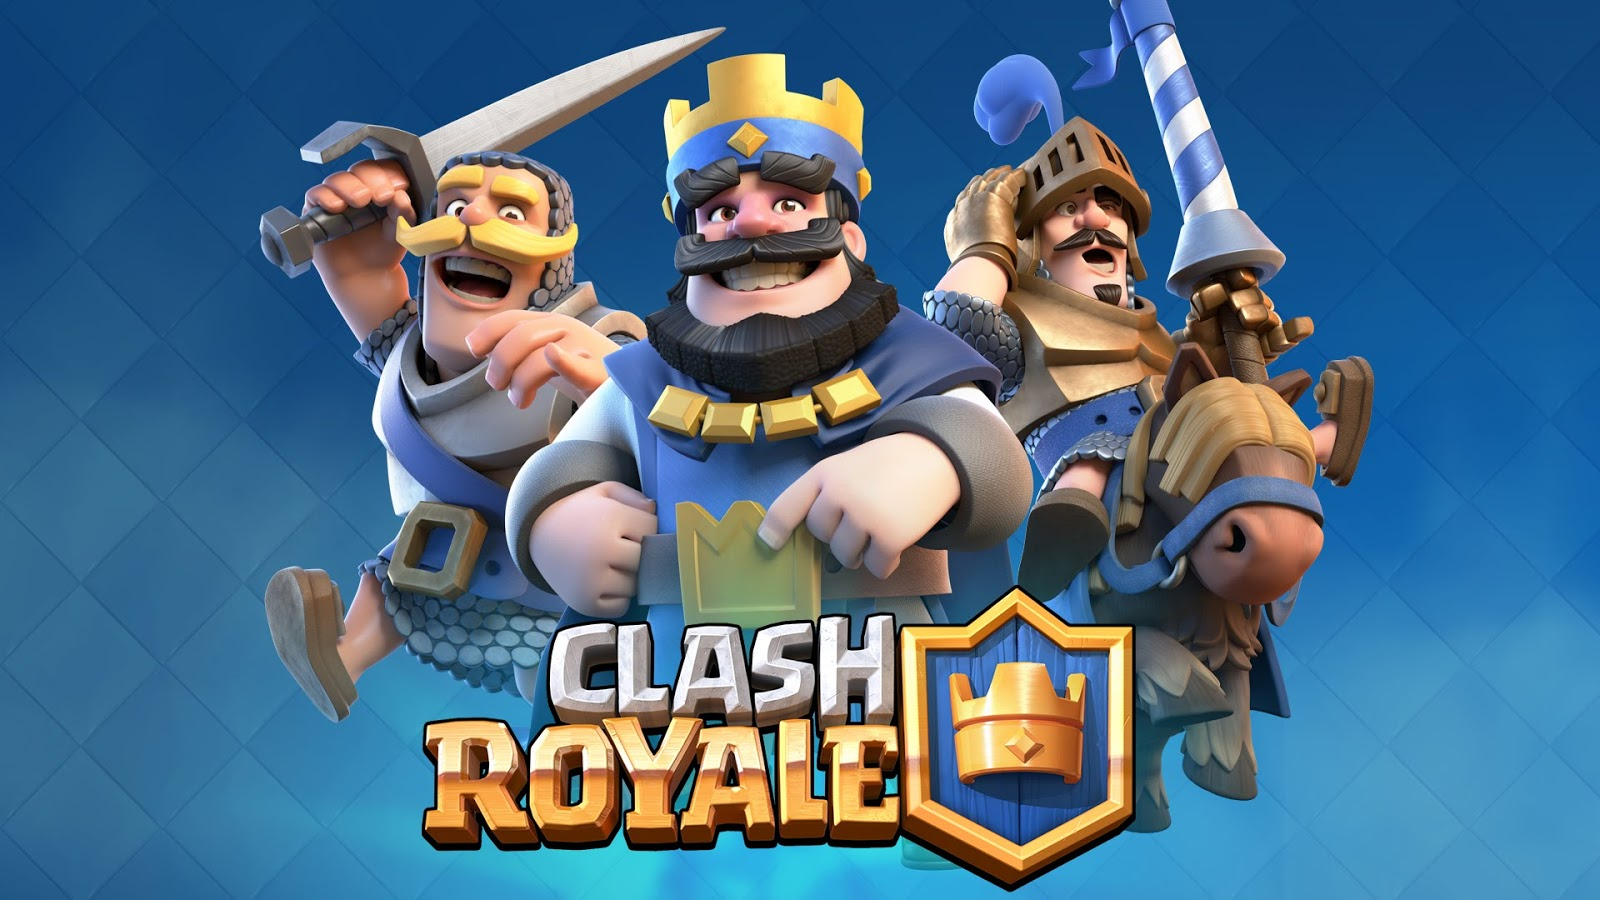 Download Game Terbaru Clash Royale 2016 - APK